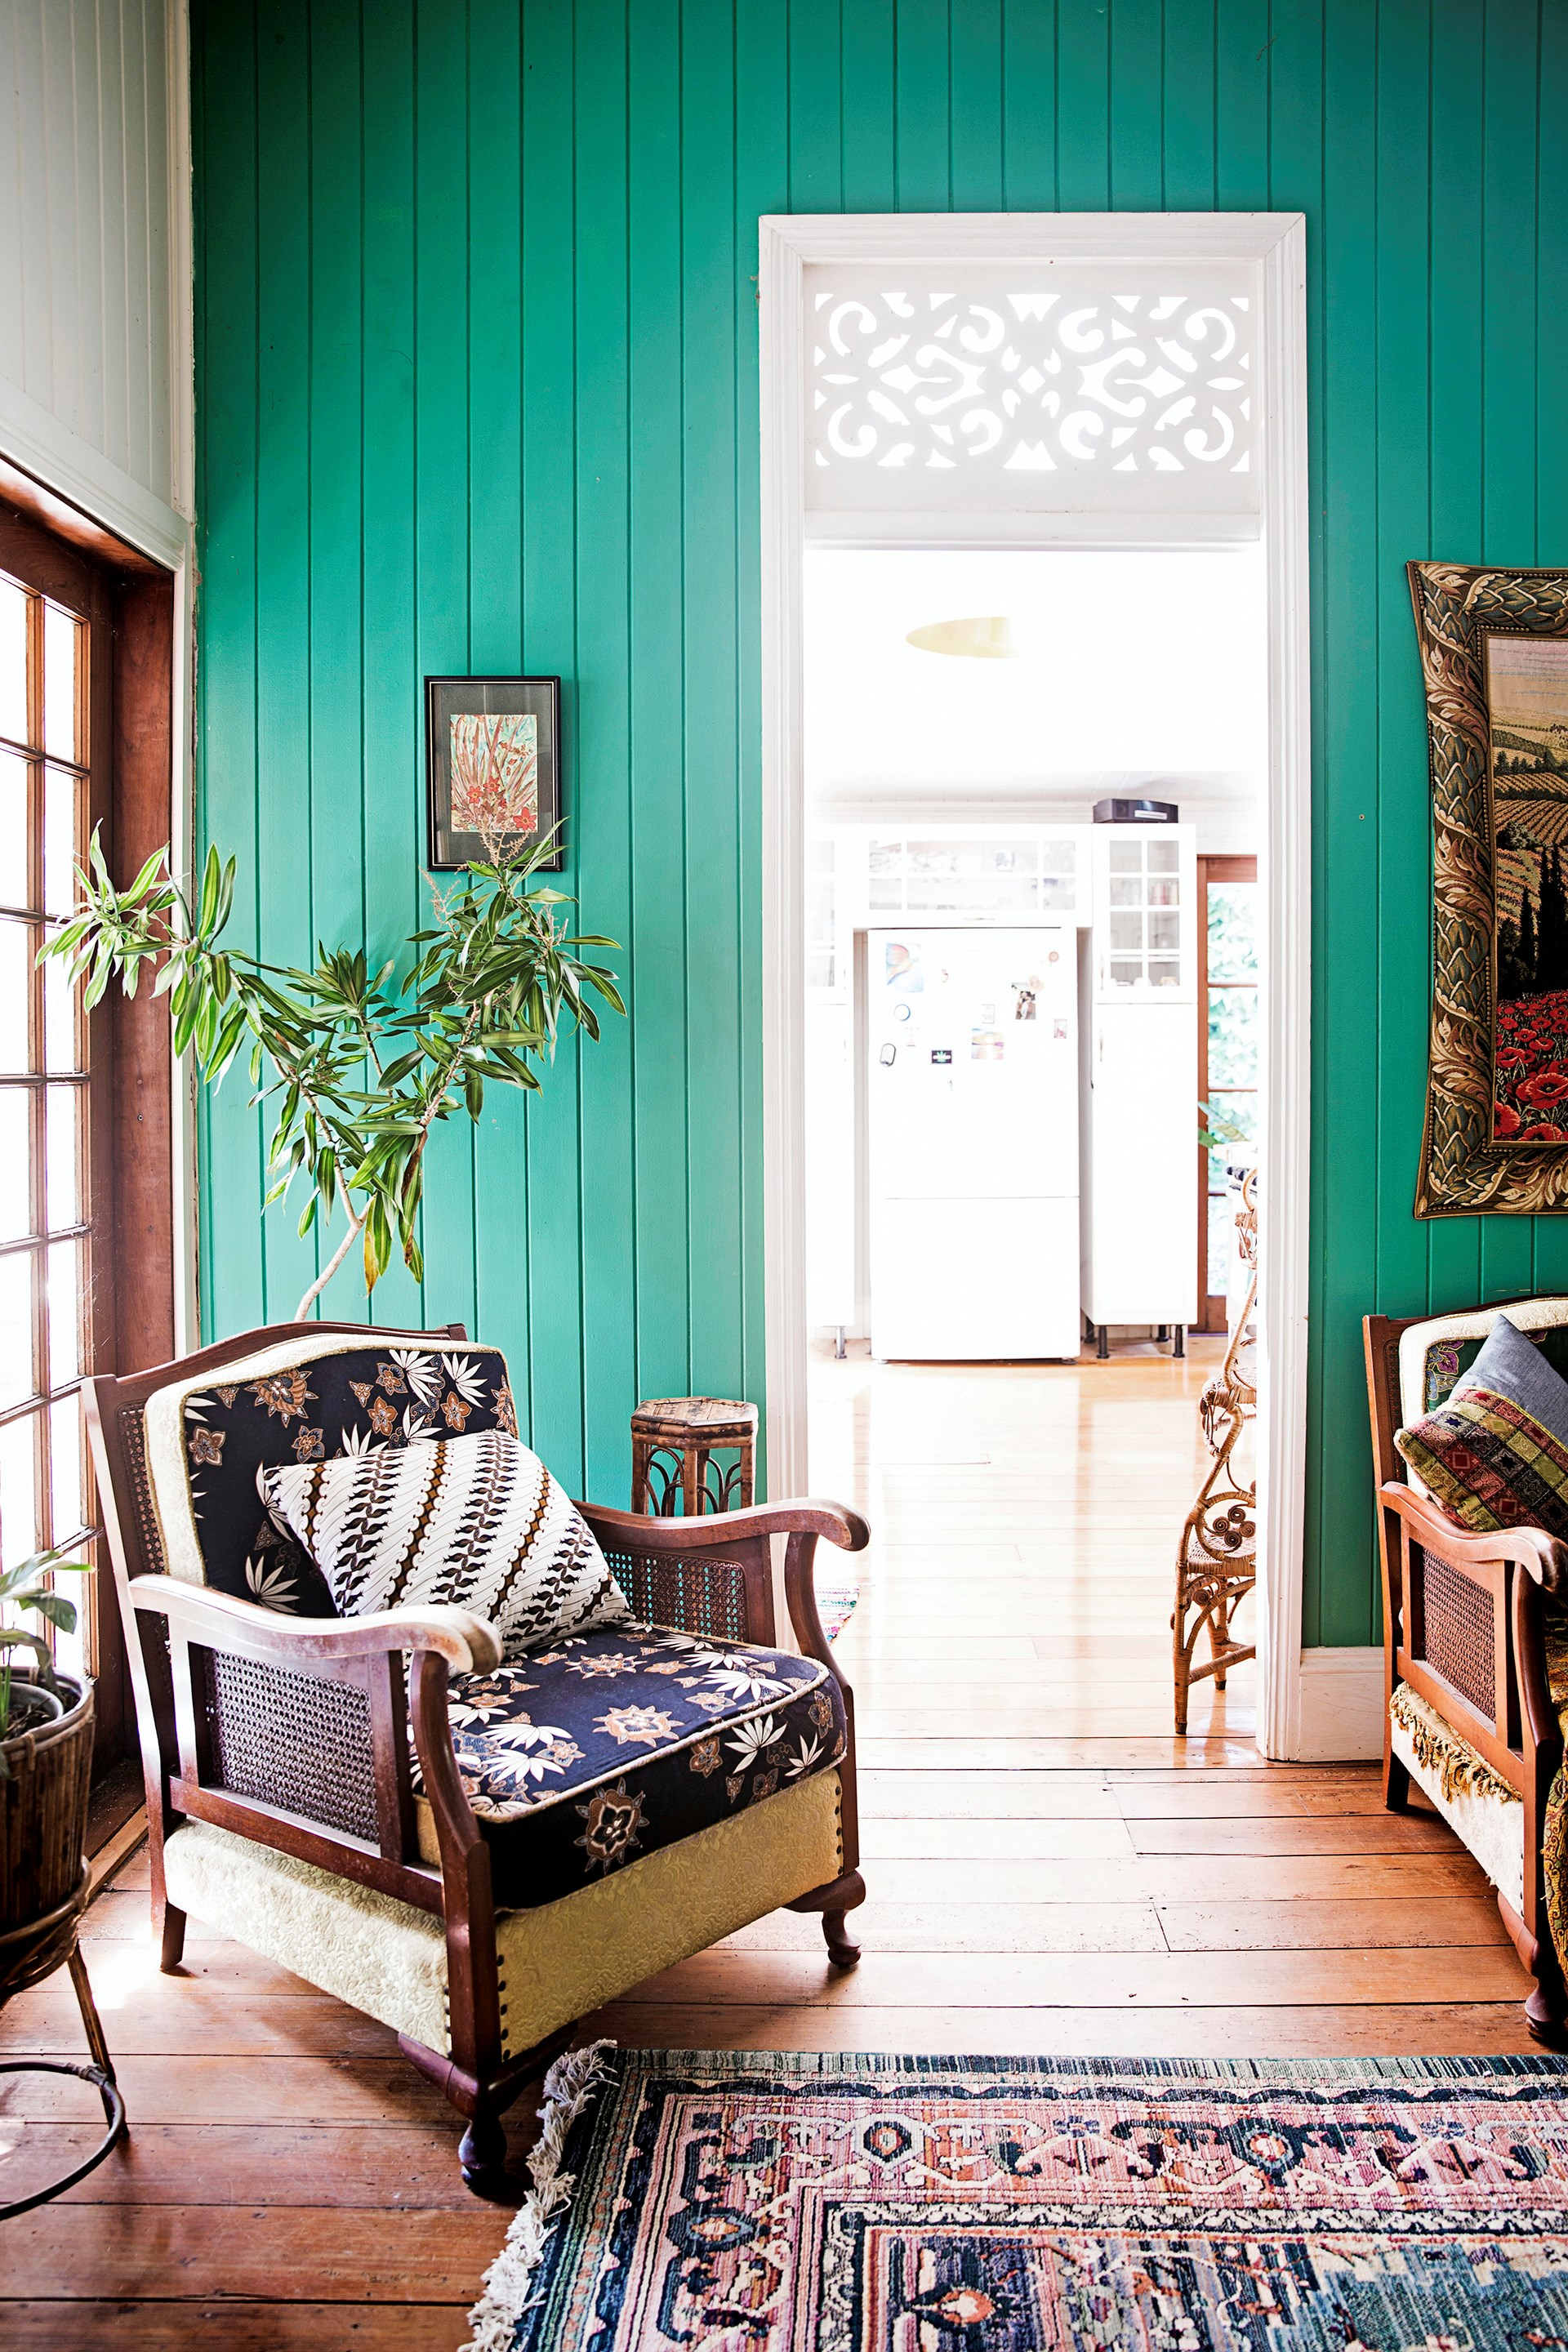 **Leonie Prendeville** Old is new again in this revamped Queenslander, brimming with vintage finds and eclectic style. [See the full home here](http://www.homestolove.com.au/old-is-new-again-in-this-revamped-queenslander-3532) or [vote for this home](http://www.homestolove.com.au/homes-reader-home-of-the-year-4499).